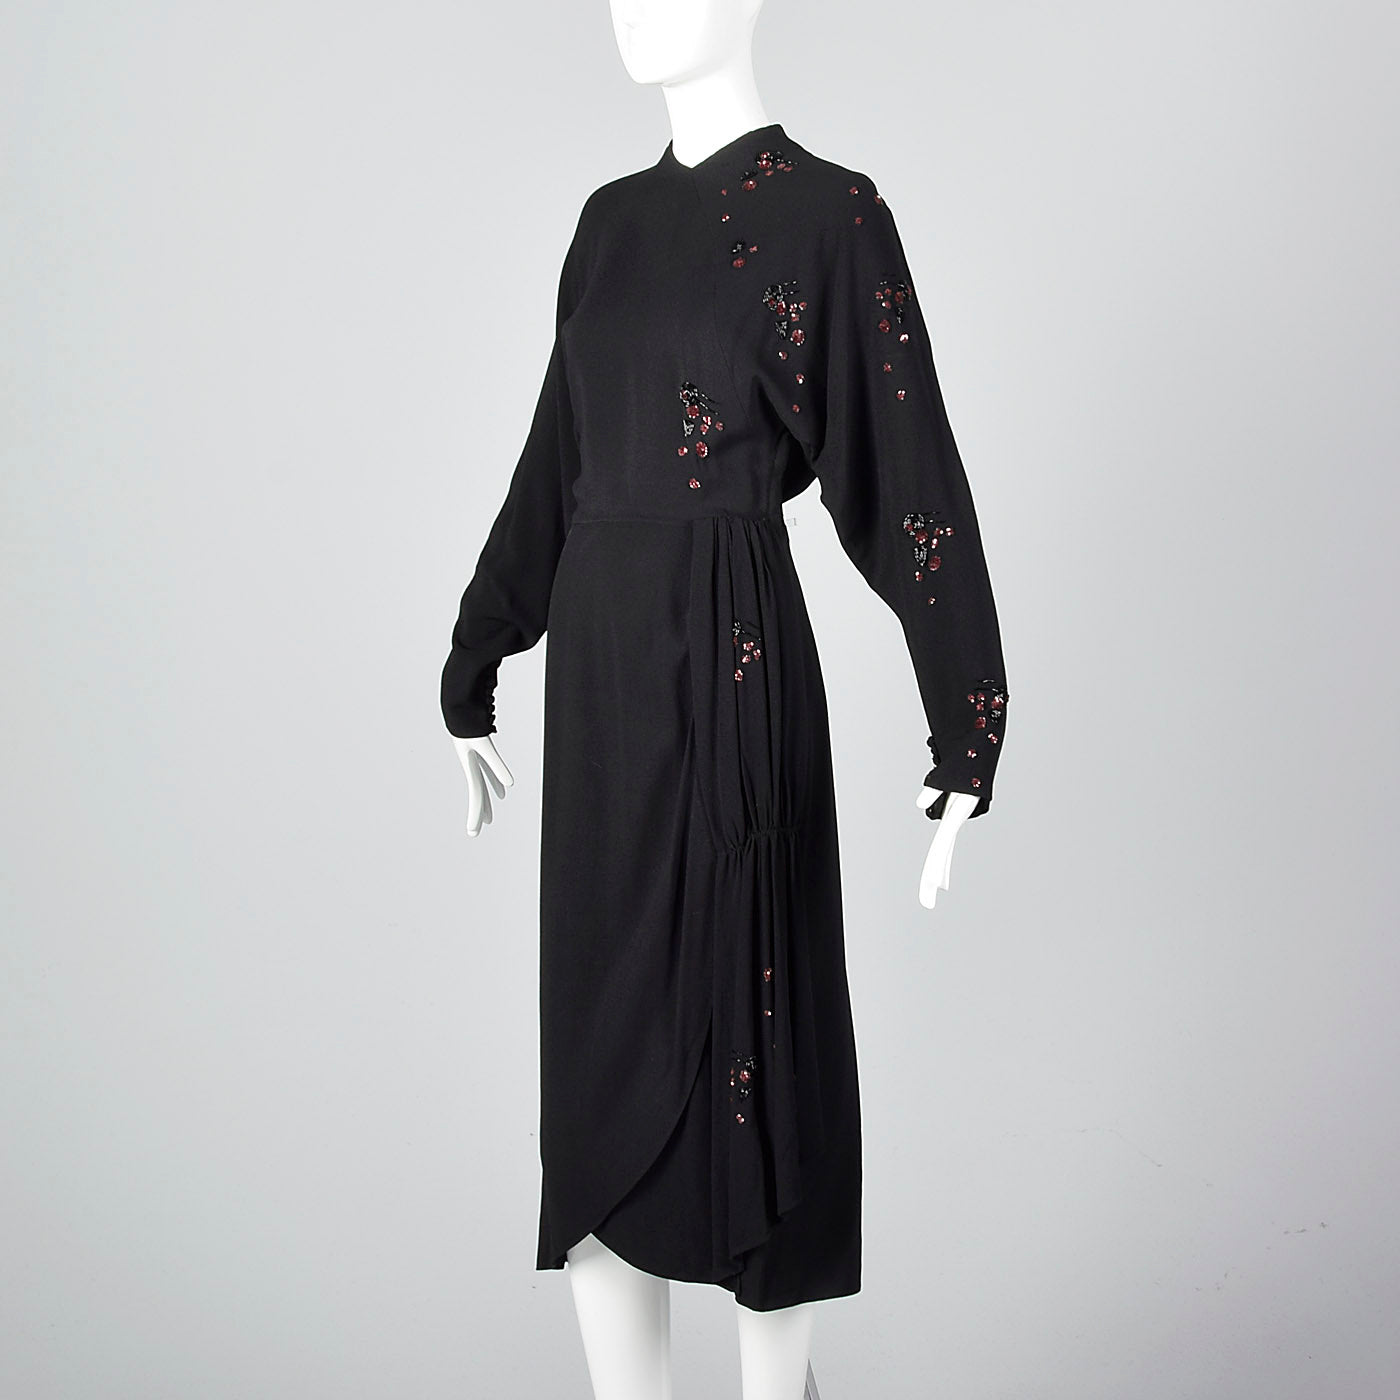 1940s Black Dress with Sequin and Beading Details